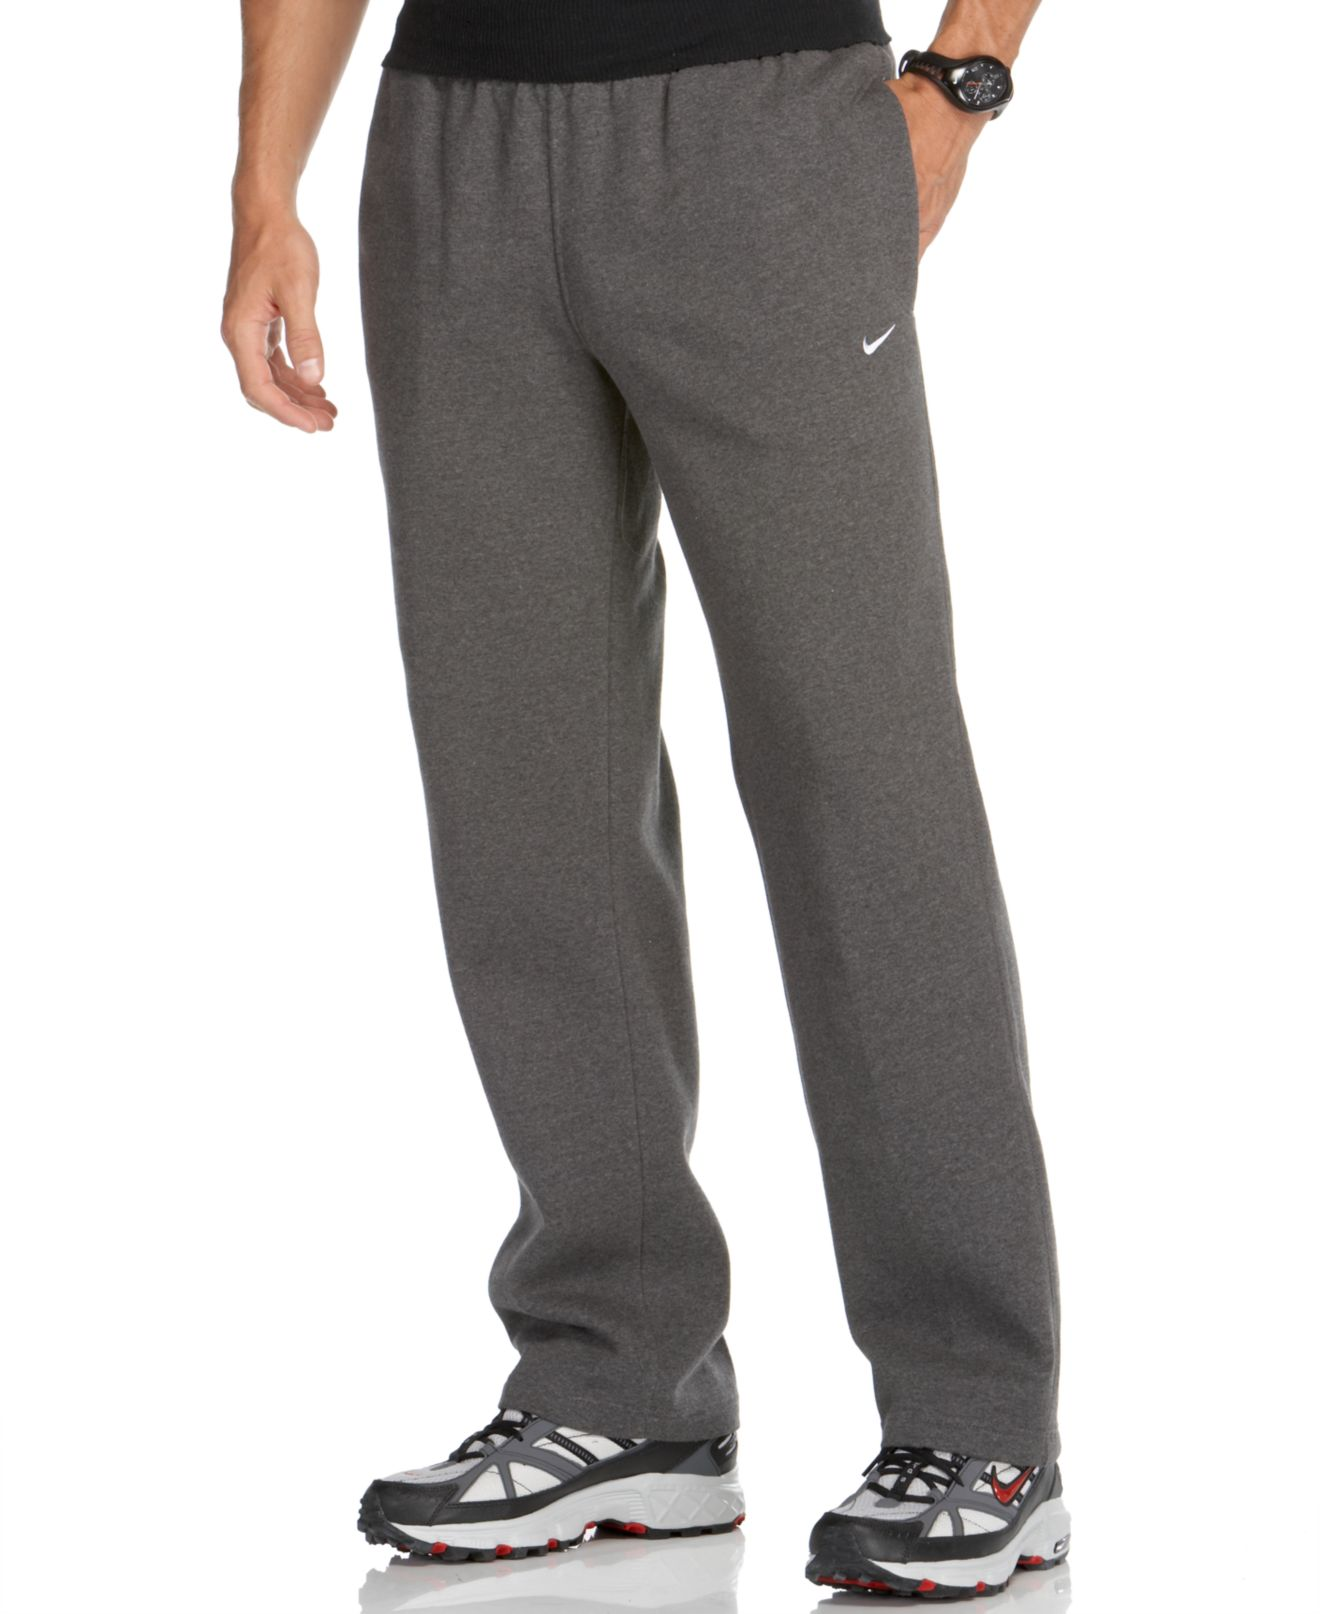 Home > Sweatpants/Shorts. Sweatpants/Shorts. Jerzees 50/50 Fleece Sweatpants. Regular Price: $ Regular Price: $ Sale Price: $ You Save 63%. Alo Sport Men's Mesh 9